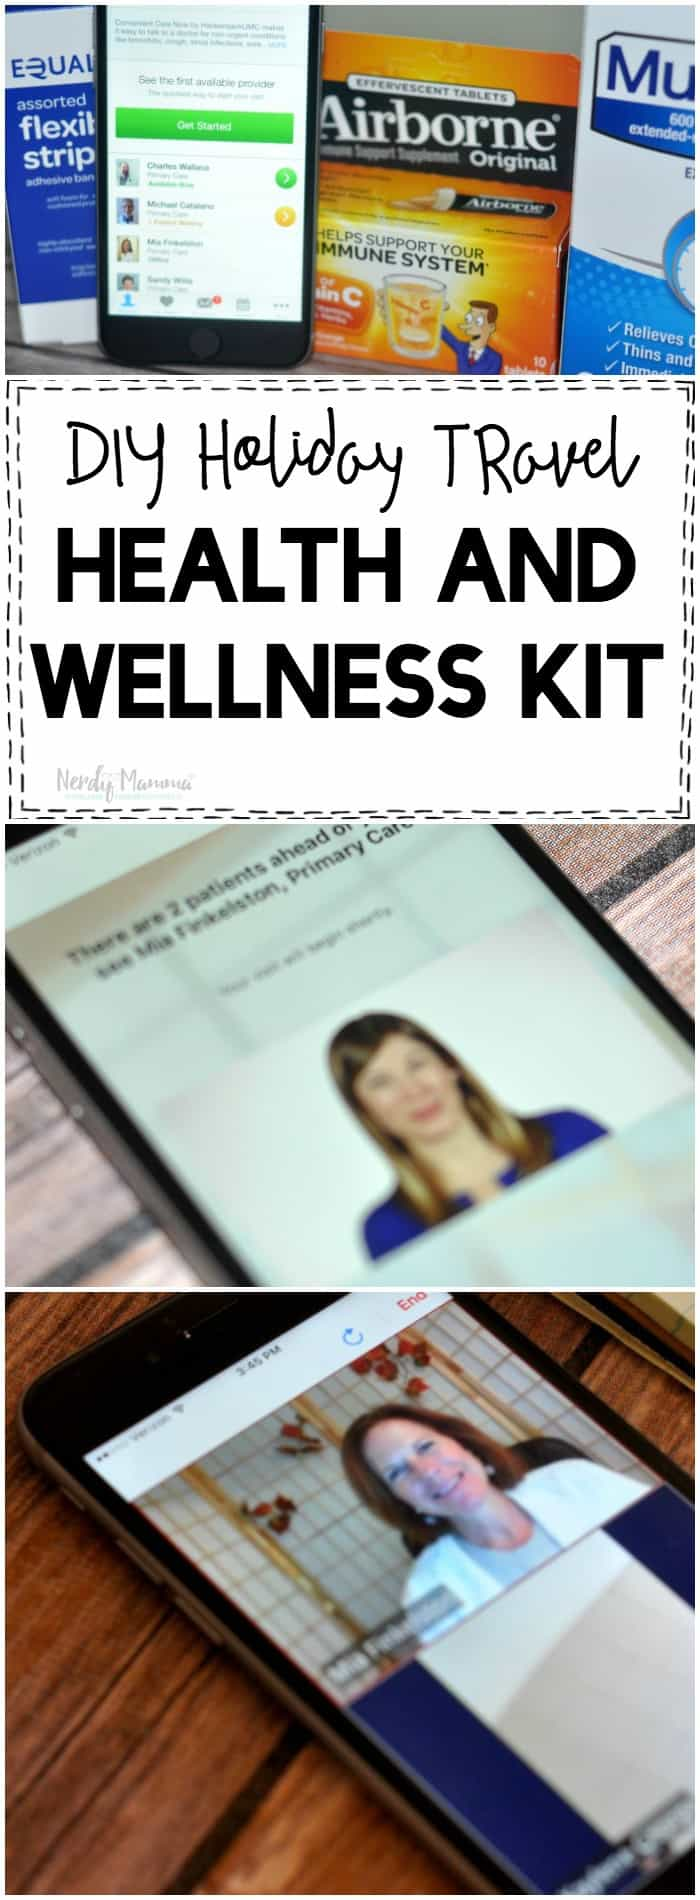 Woah. If you're traveling for the holidays you absolutely NEED to make one of these DIY Holiday Travel Health and Wellness Kit!